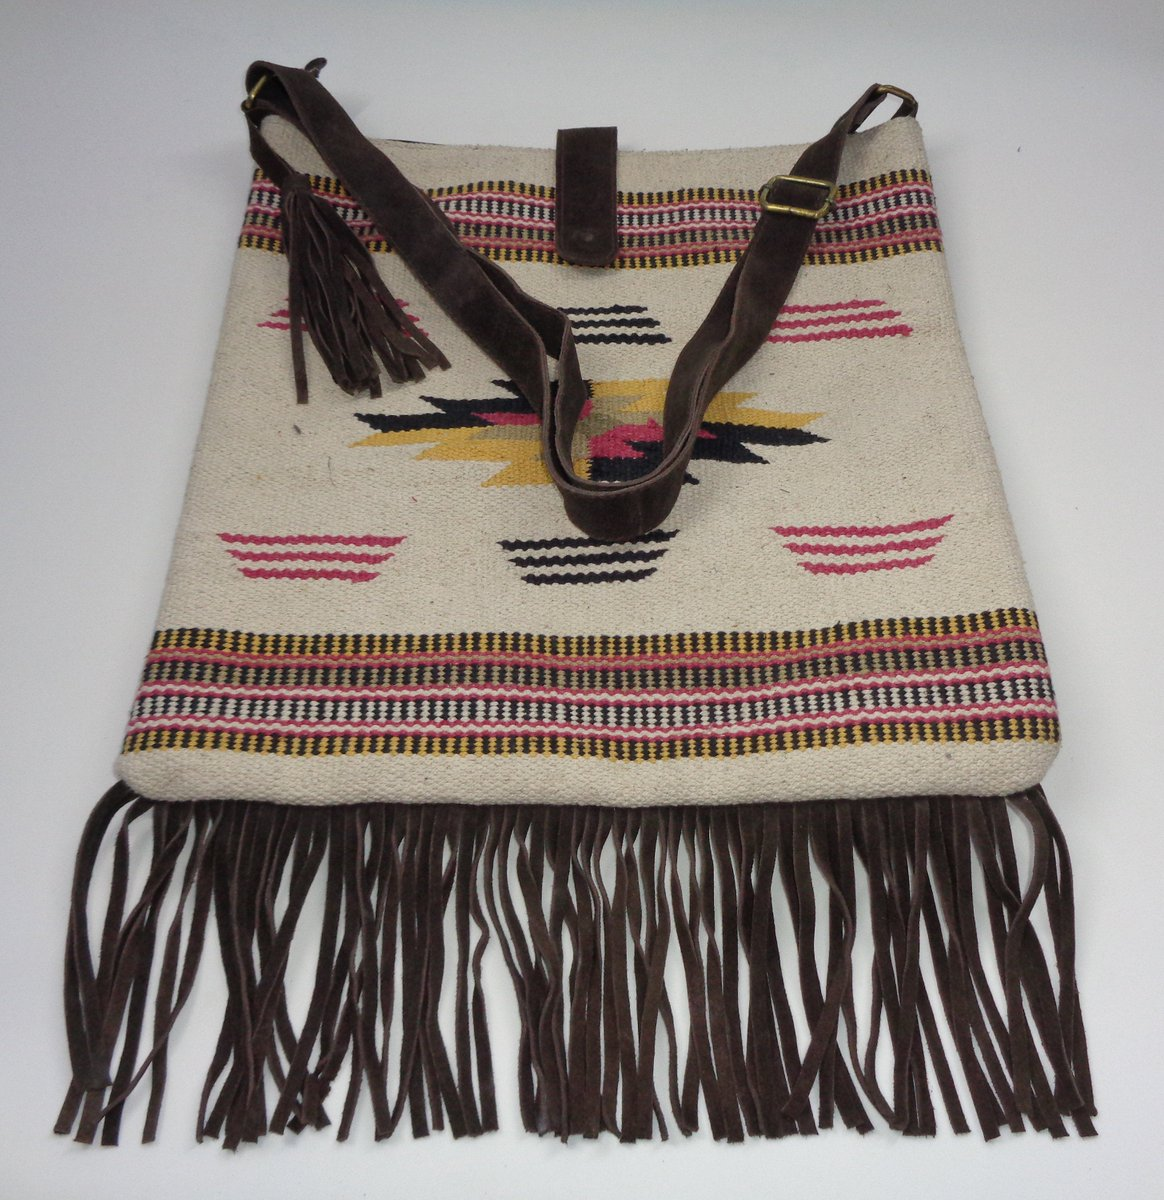 Excited to share the latest addition to my #etsy shop: Handmade Leather Cross-Body Bag Eco Friendly Sling Bag Cotton Rugs Shoulder Bag Stylish Bag with Leather Fringes  #white #bachelorparty #thanksgiving #shoulder #artdeco #crossbodybag #leather